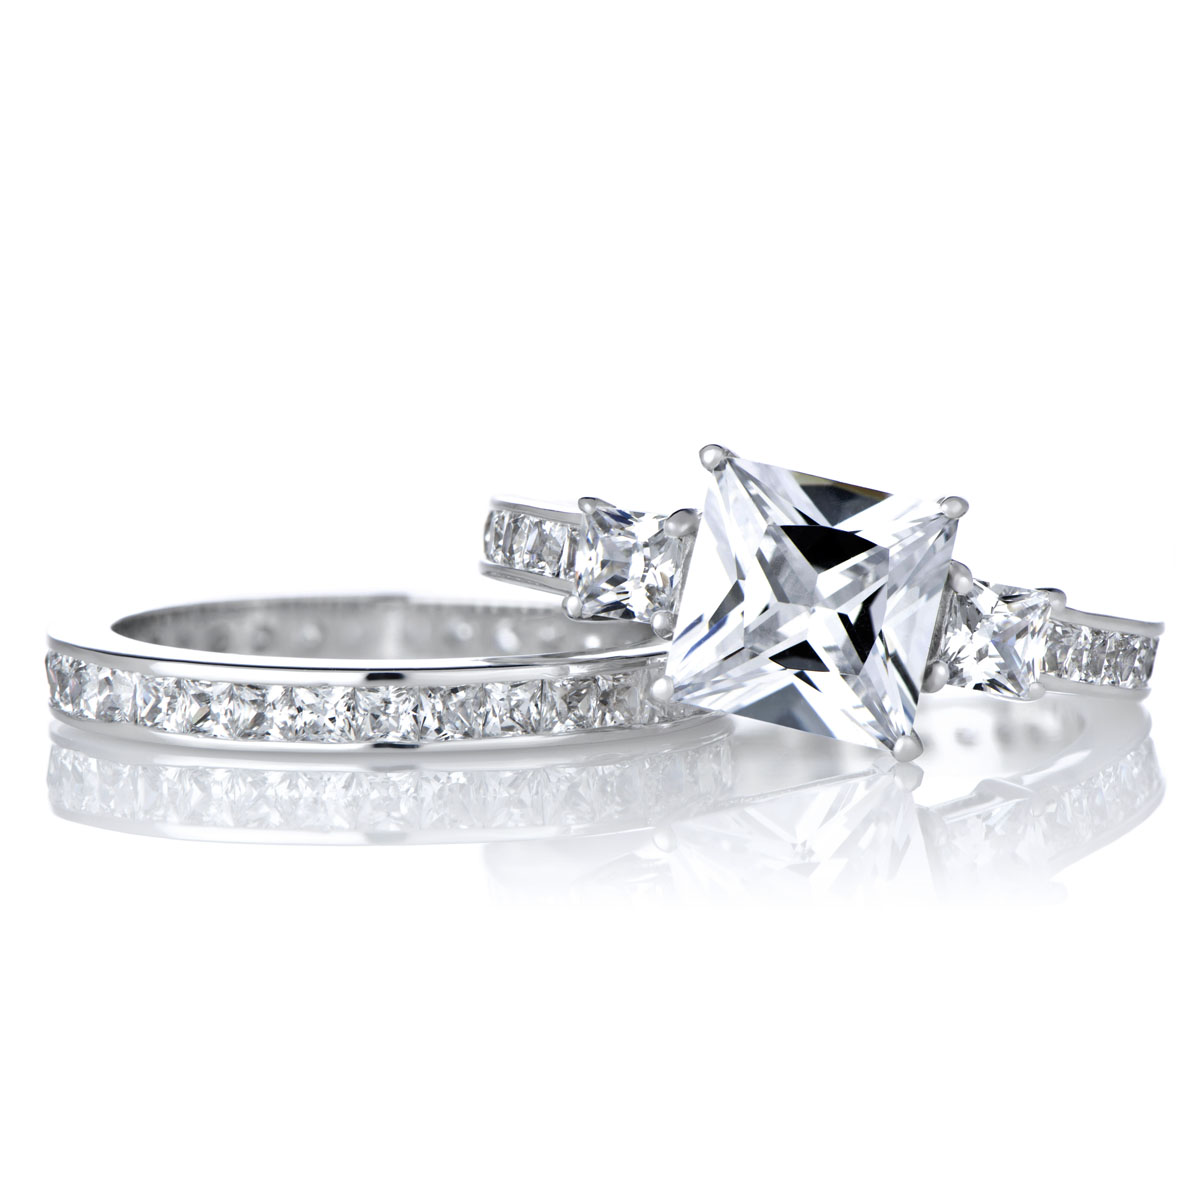 engagement ring set - 2.5 carat princess cut cz